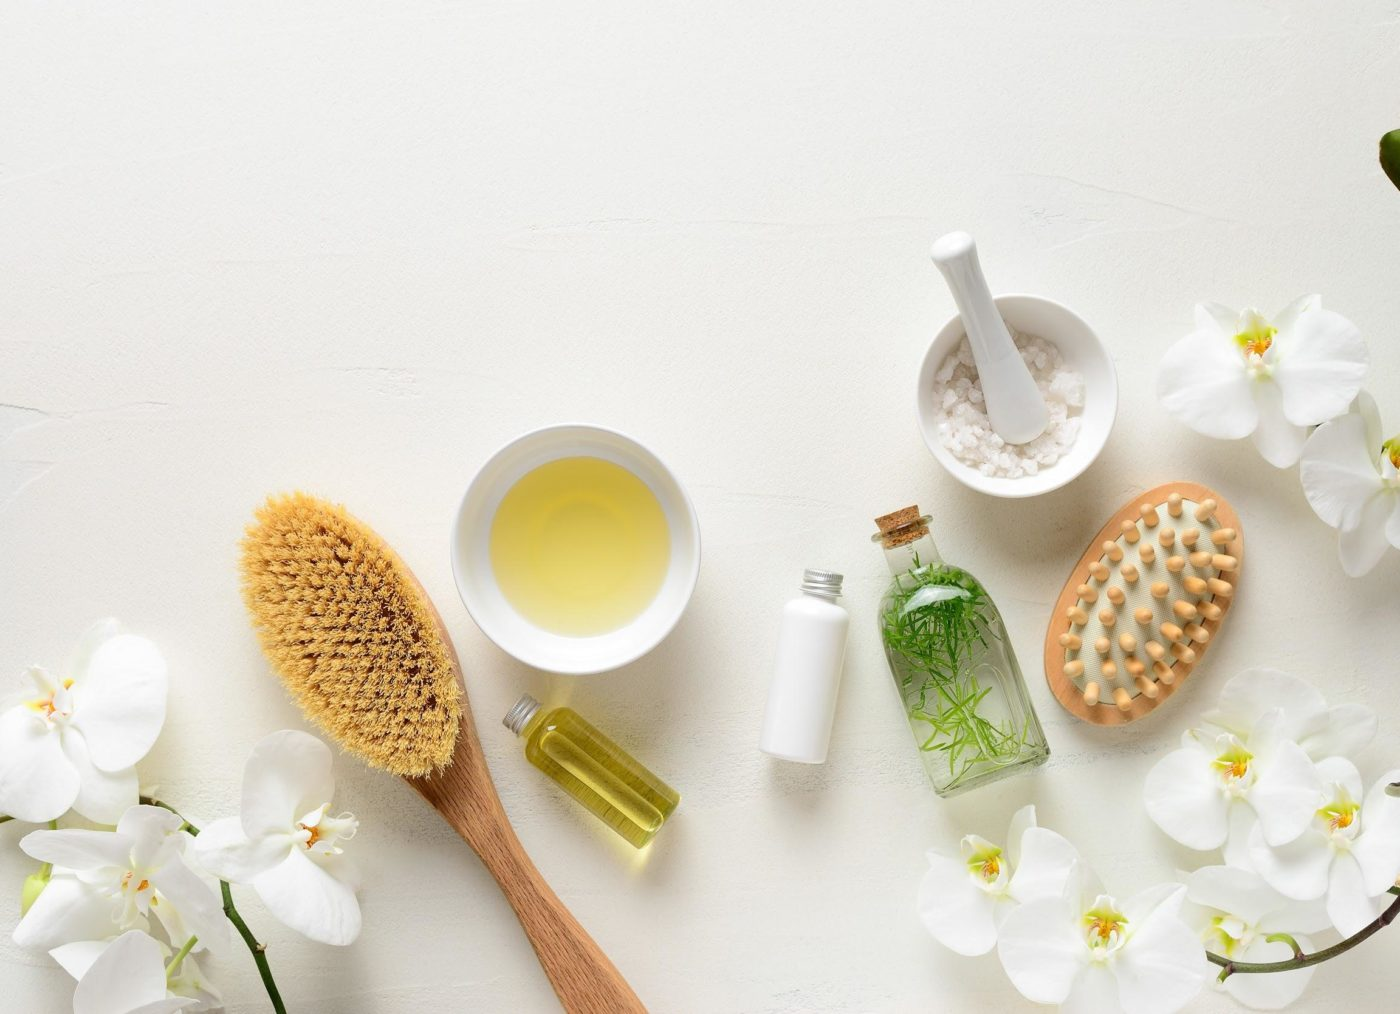 Spa products for relaxing and skin care treatment